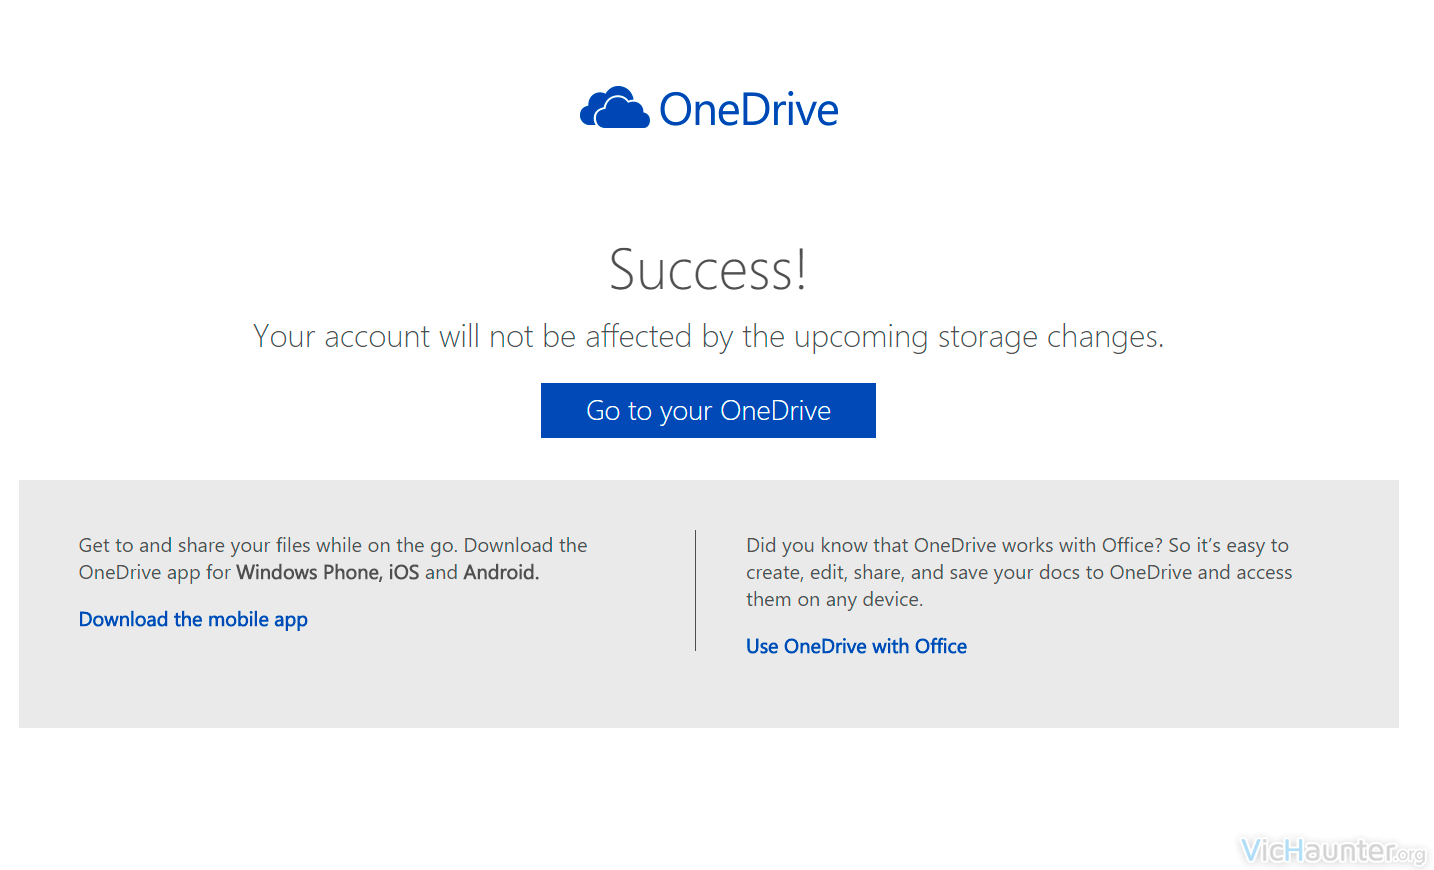 onedrive-success